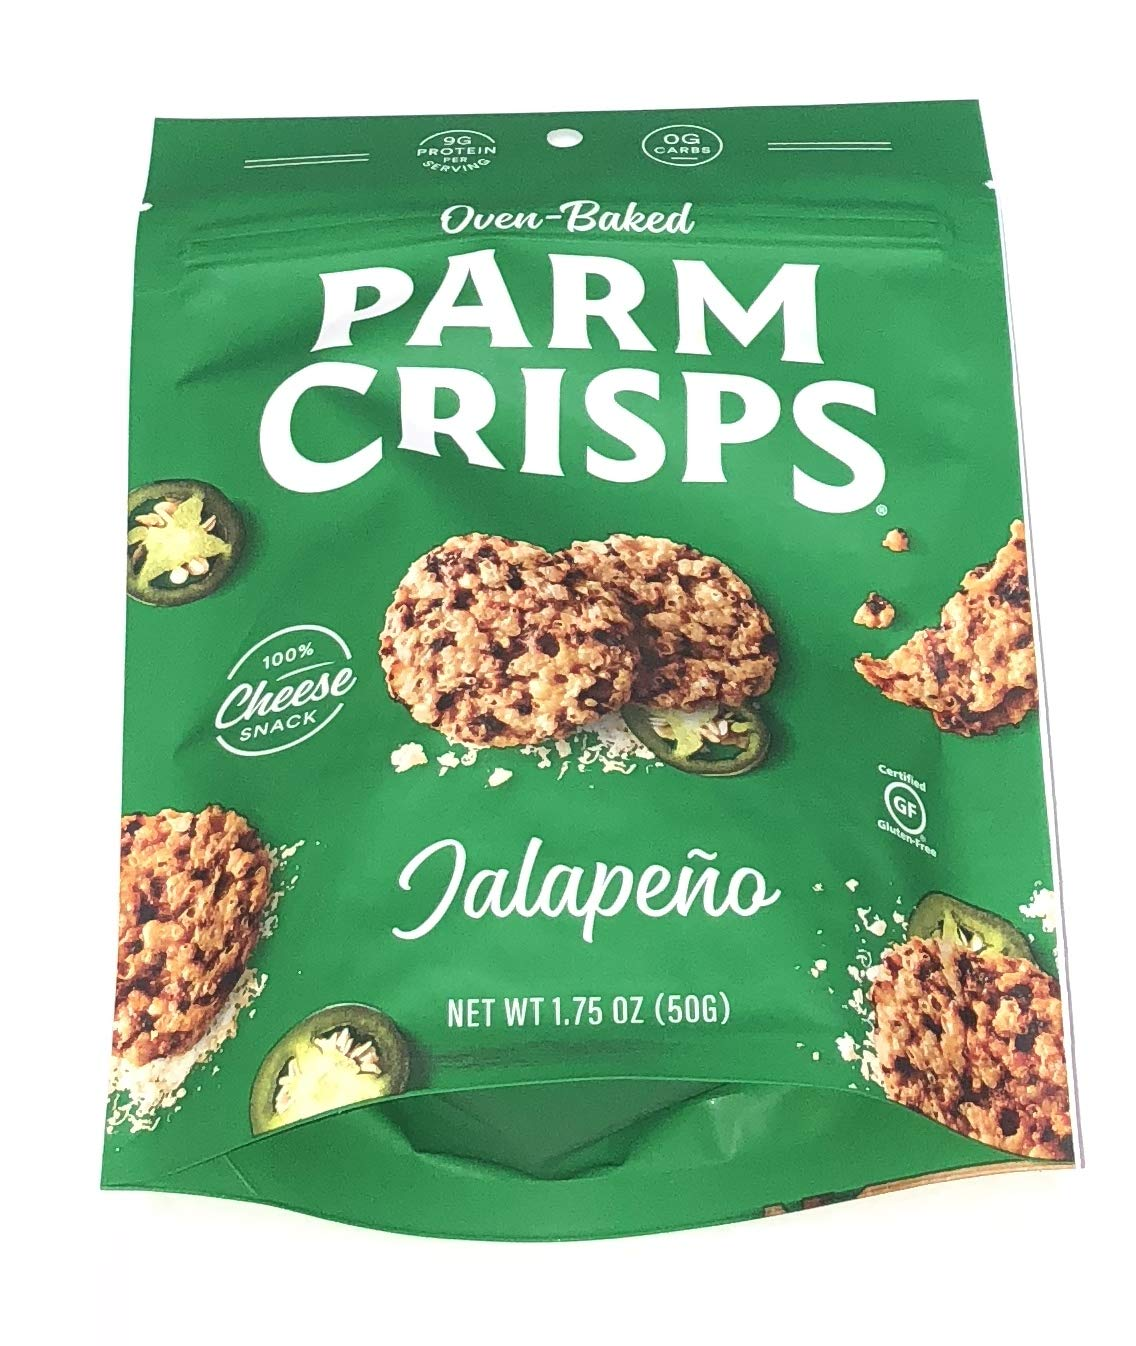 THAT'S HOW WE ROLL PARM CRISPS MINIS 4 PACKS 4 FLAVORS TO CHOOSE FROM (PARMCRISPS MINIS JALAPENO 4PK)